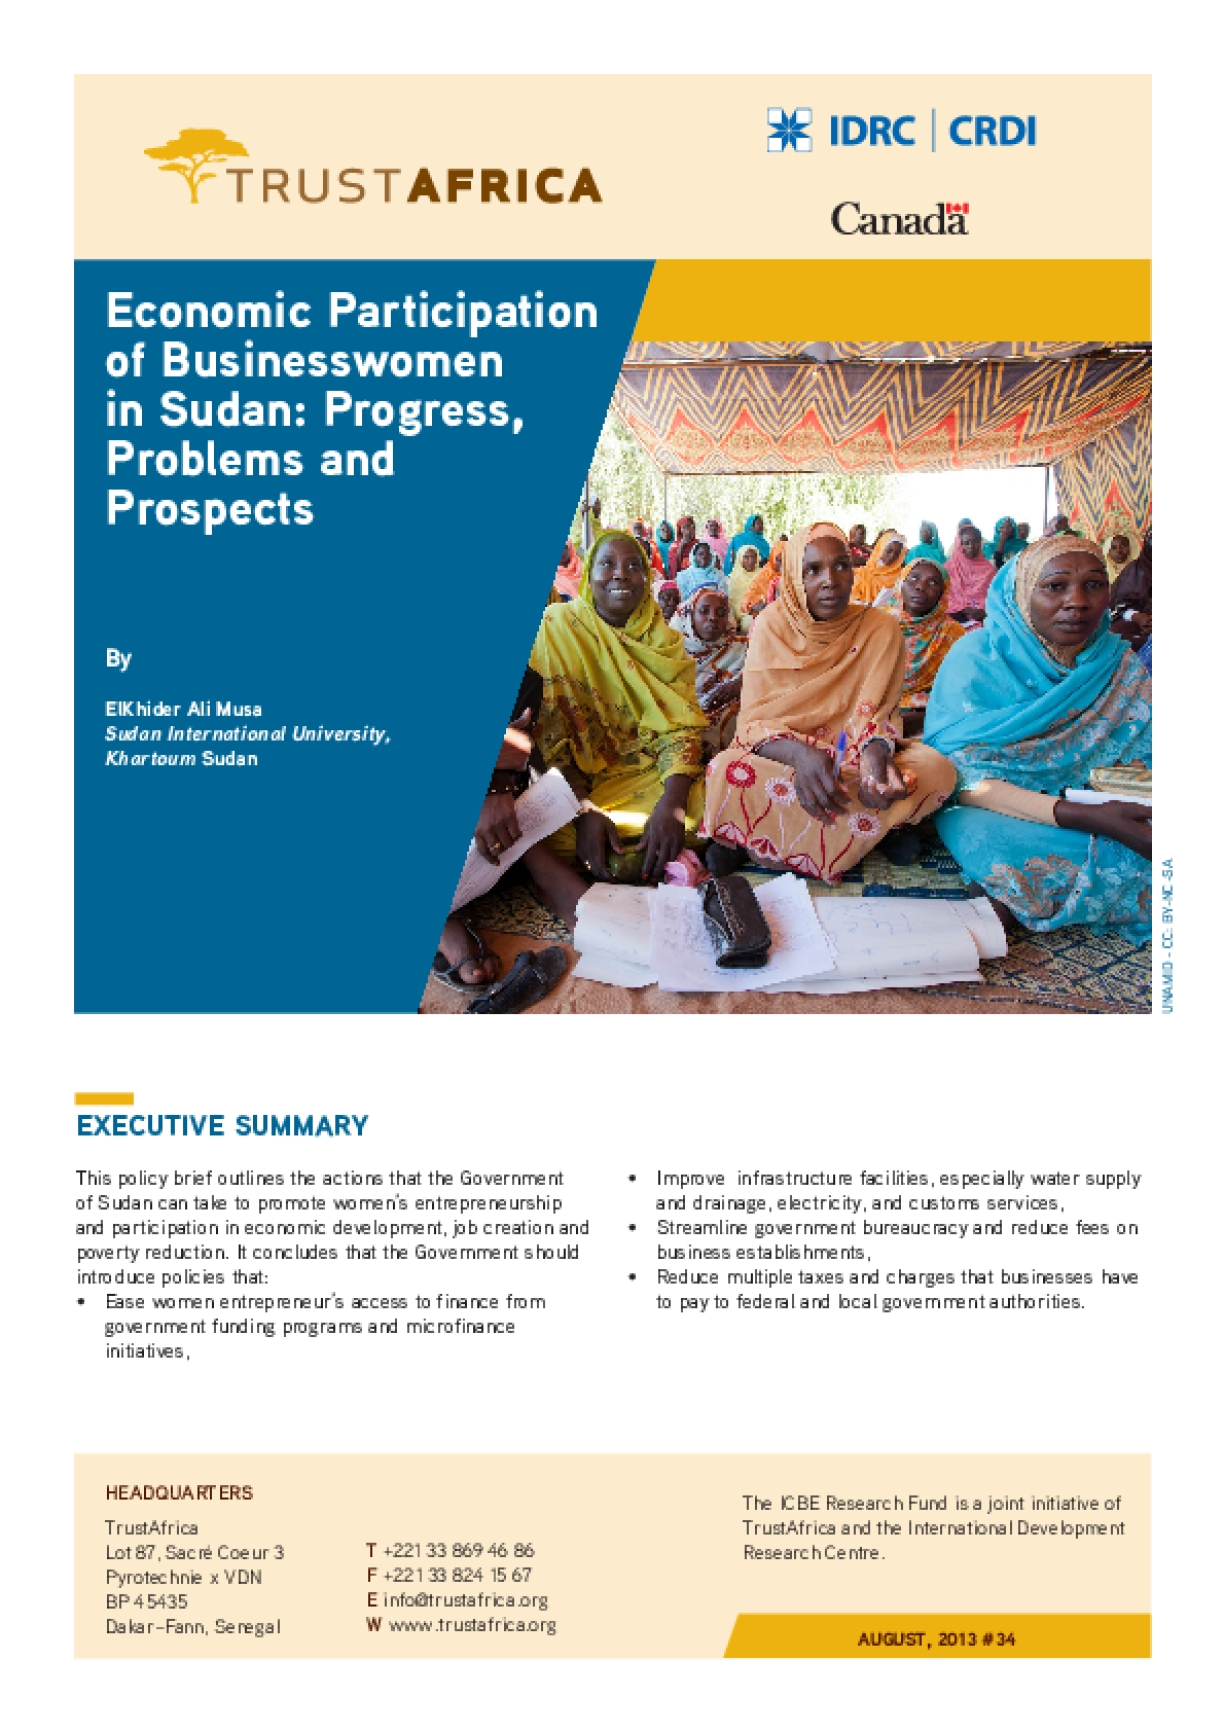 Economic Participation of Businesswomen in Sudan: Progress, Problems and Prospects